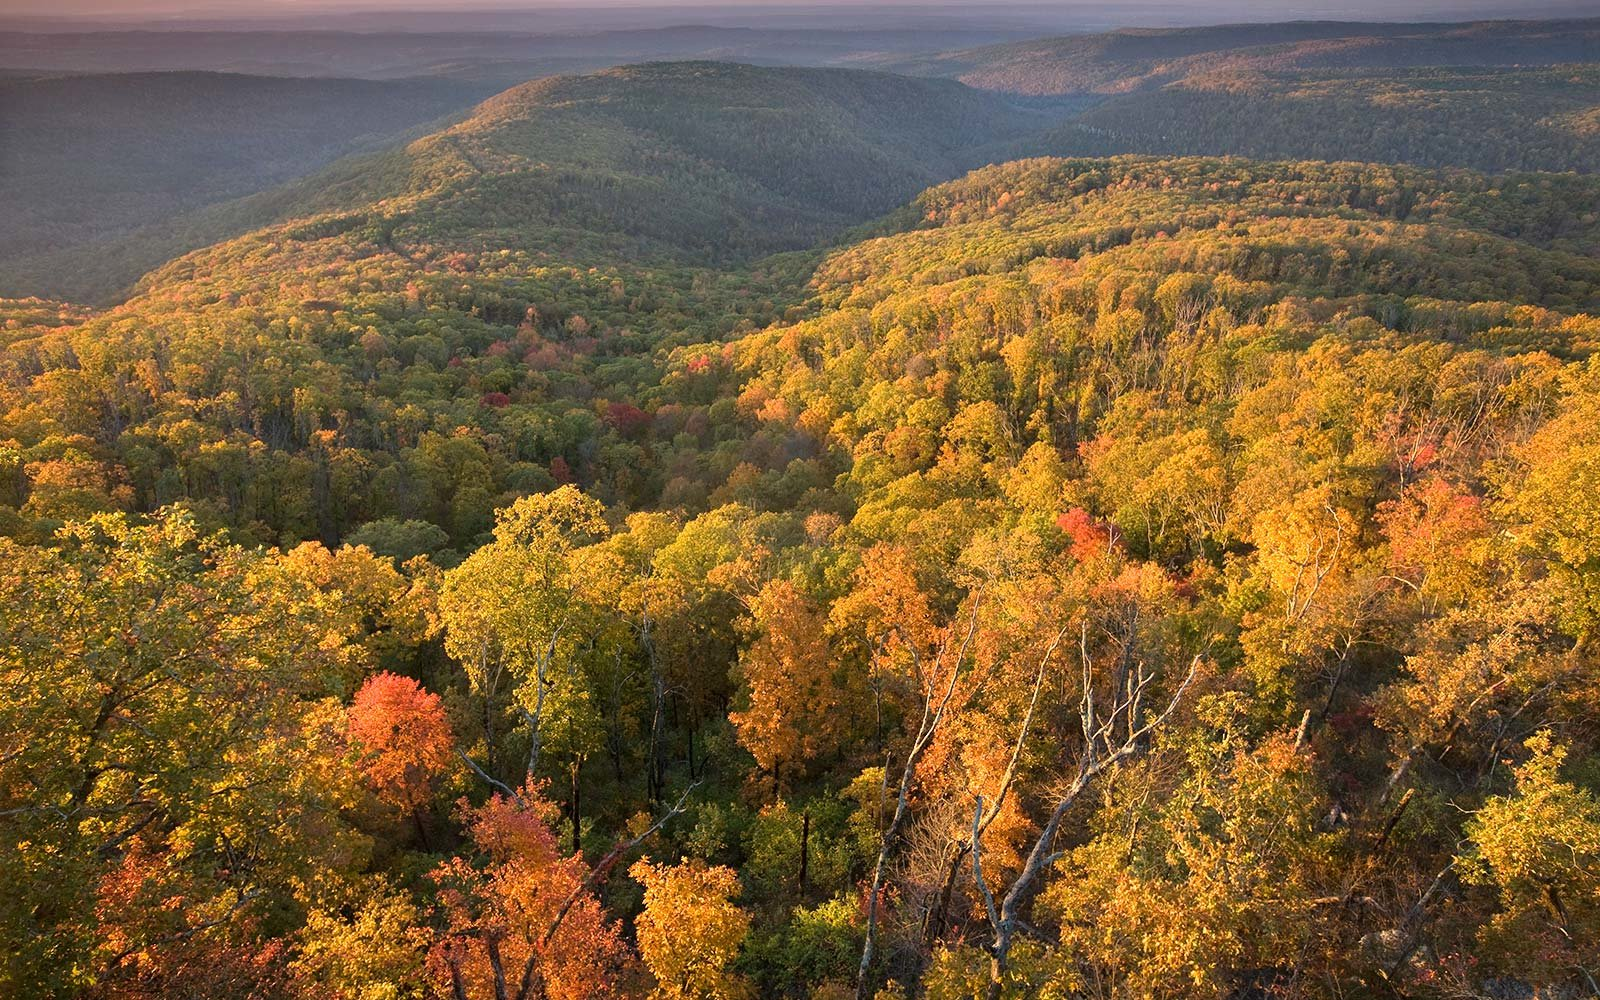 Best Spots for Camping in the Fall